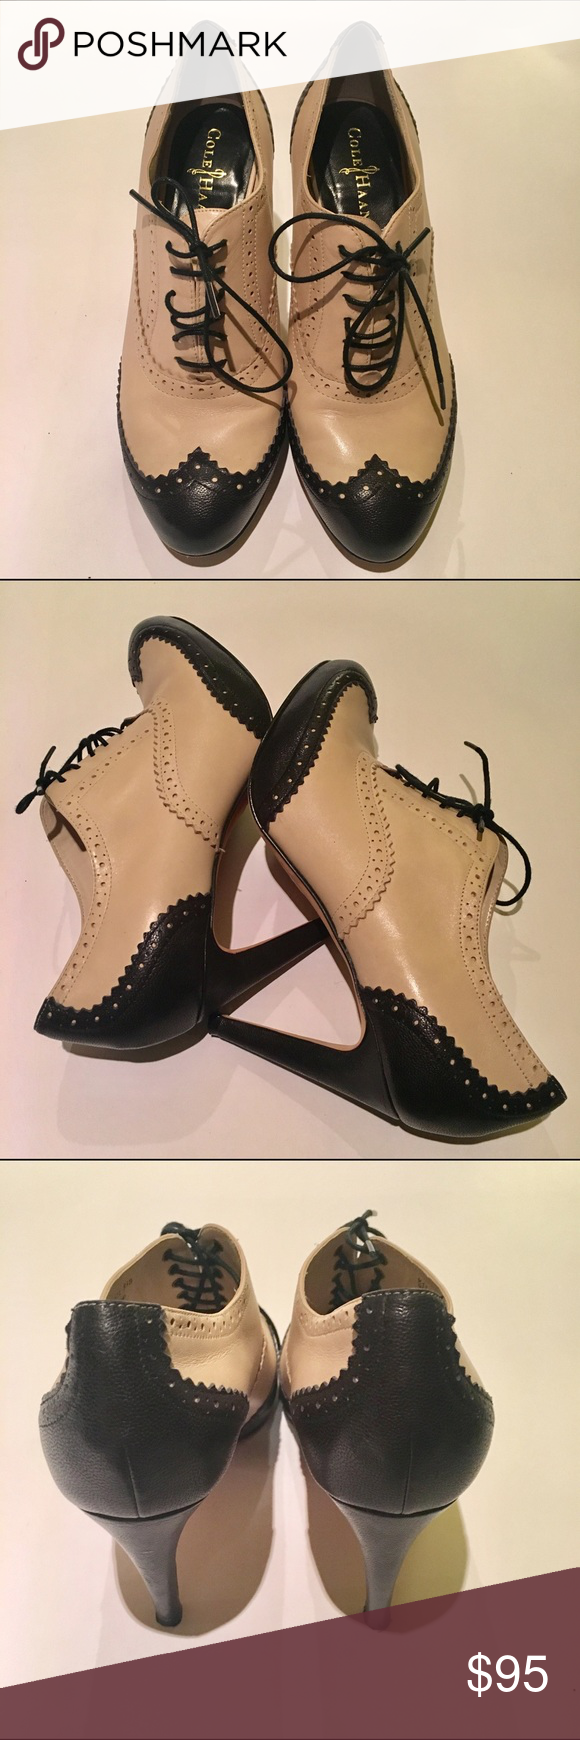 Cole Haan Luninda Air Oxford Pump Size 8 1/2 Cole Haan Lucinda Air Oxford Pumps. Size 8 1/2 -- but fit more like an 8. Round wingtip toe, lace-up vamp, leather, and stacked heel. 2.75 inch shaft height. 3.75 stacked heel. Leather upper, lining and sole. Pre-owned but still in amazing shape besides the scuffed up bottom of shoe from wearing them a couple times. Cole Haan Shoes Heeled Boots